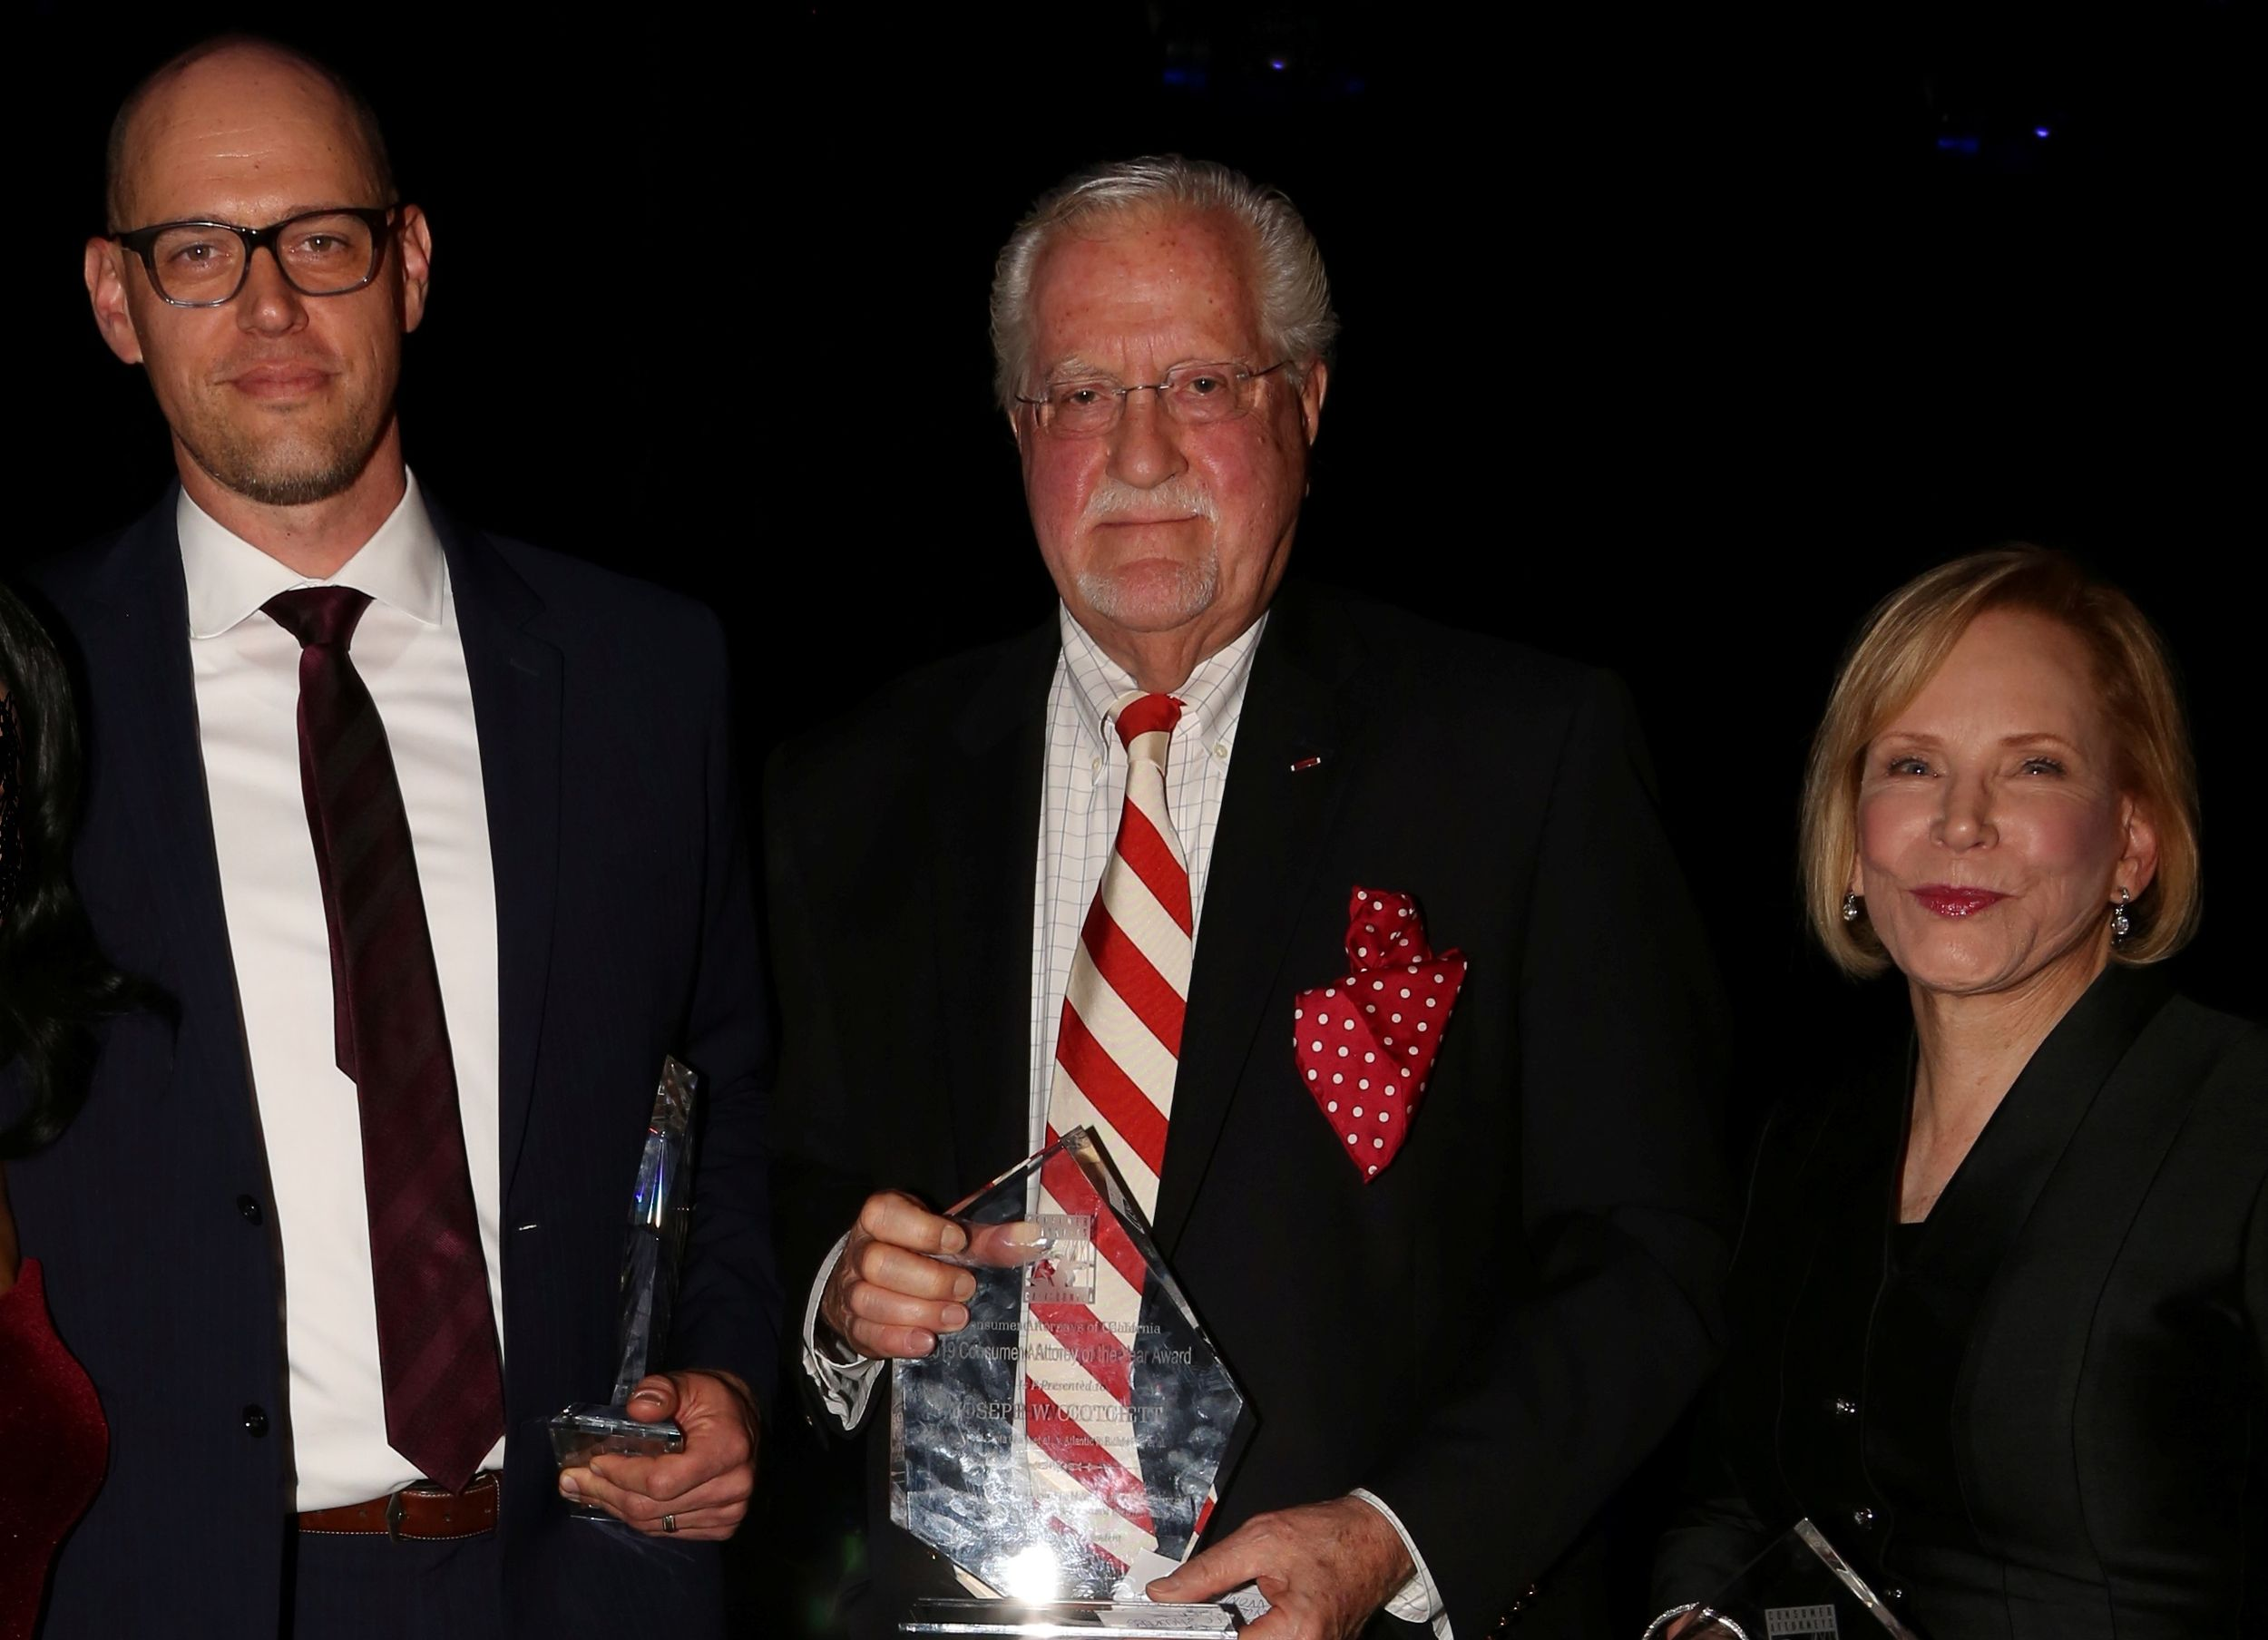 Photo of Consumer Attorney of the Year 2018 winners Craig Peters on the left and David Winnett on the right